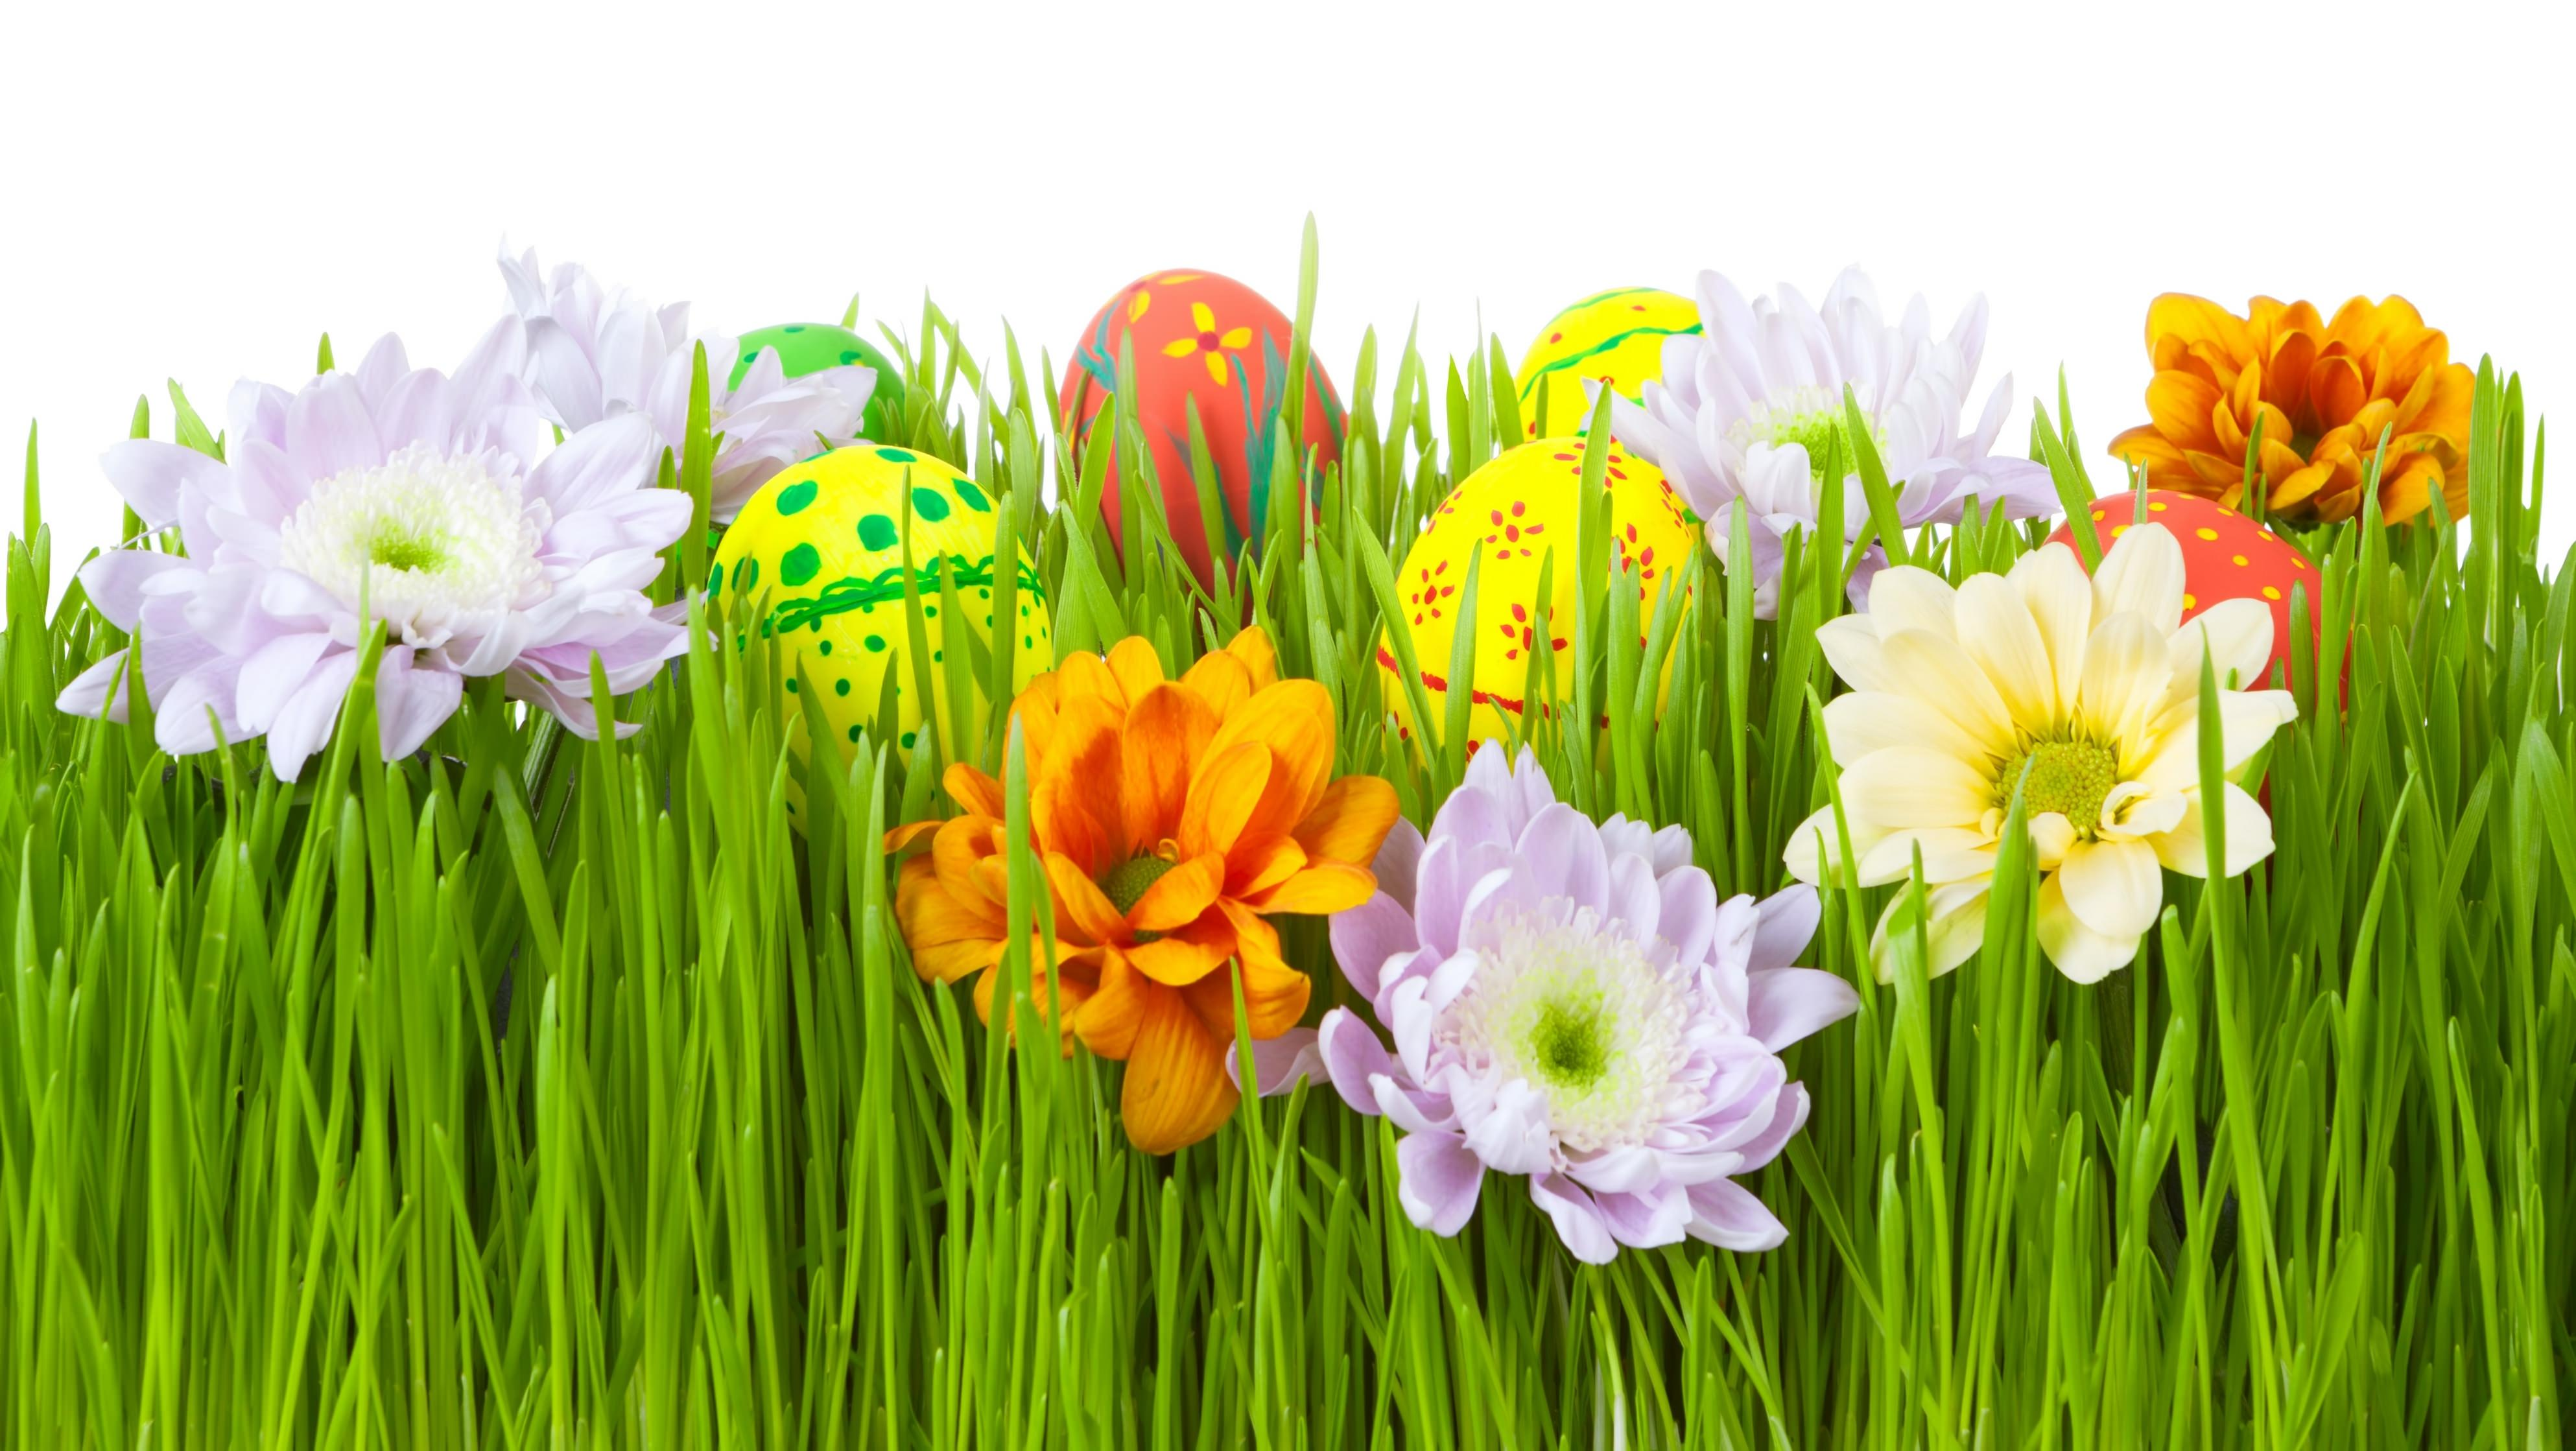 Easter,Background,Designs,Flower,Eggs